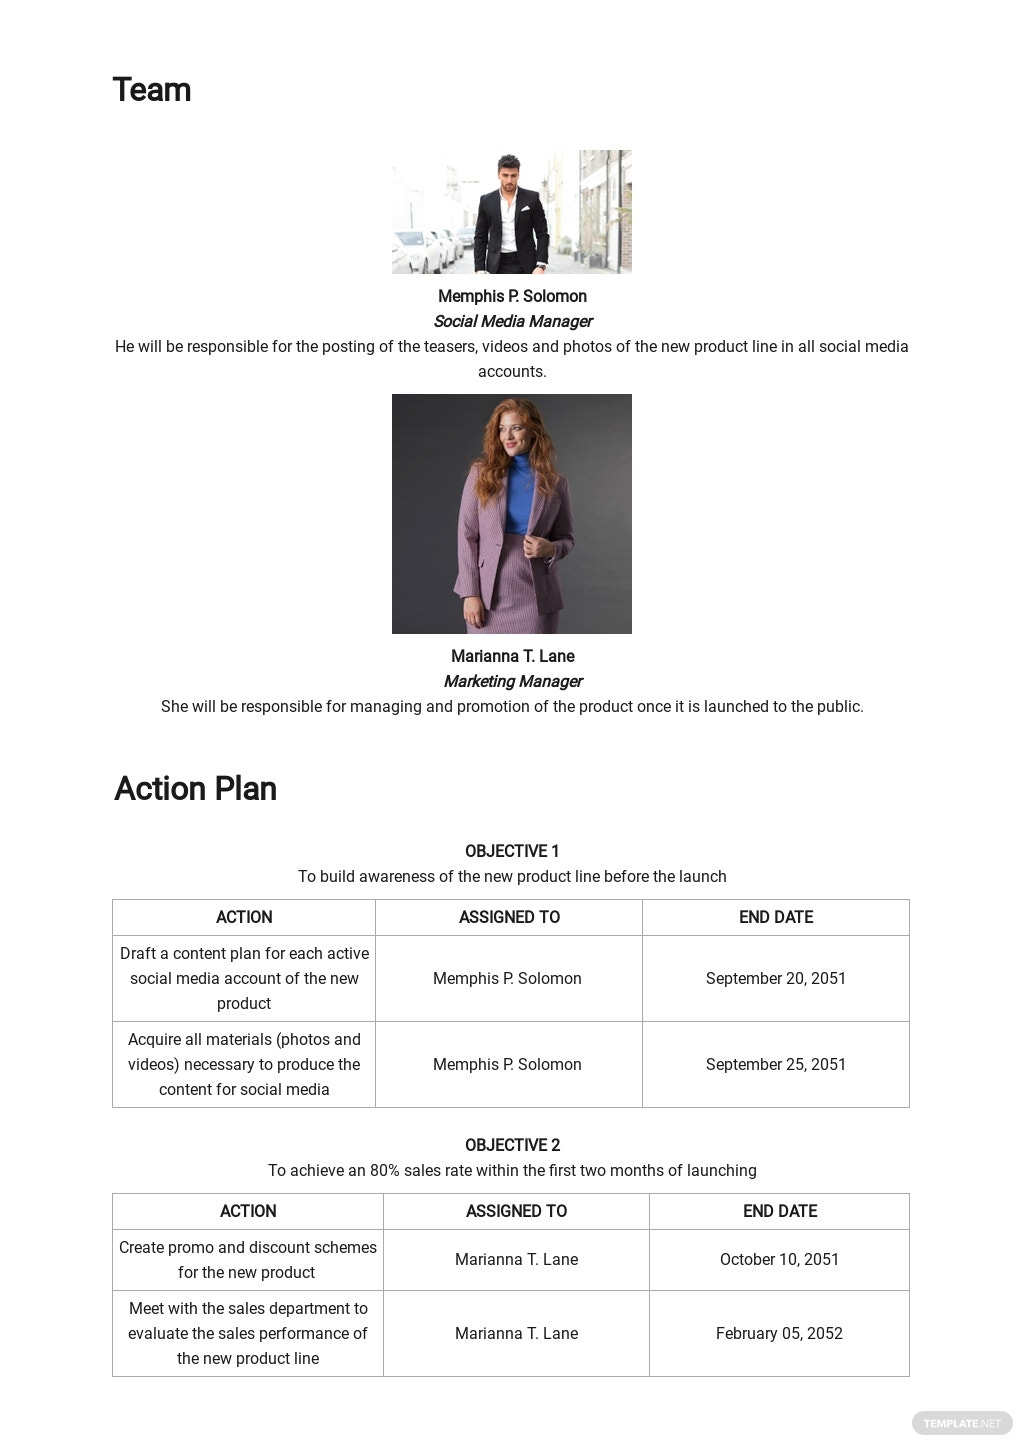 Campaign Launch Plan Template 2.jpe